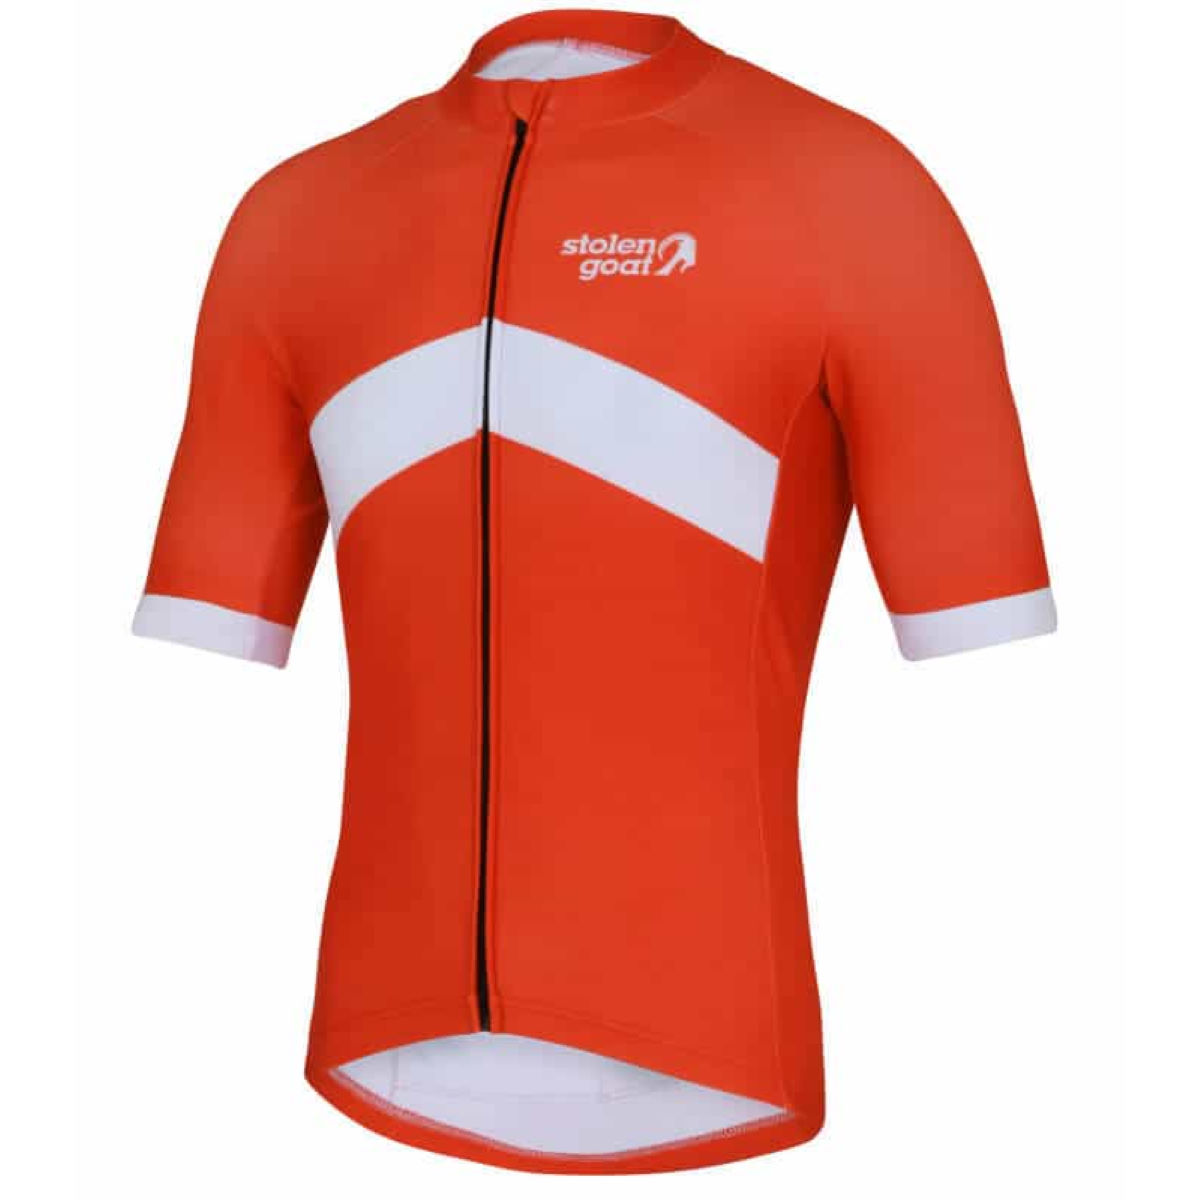 Maillot Stolen Goat Orkaan Everyday (manches courtes) - S Orange